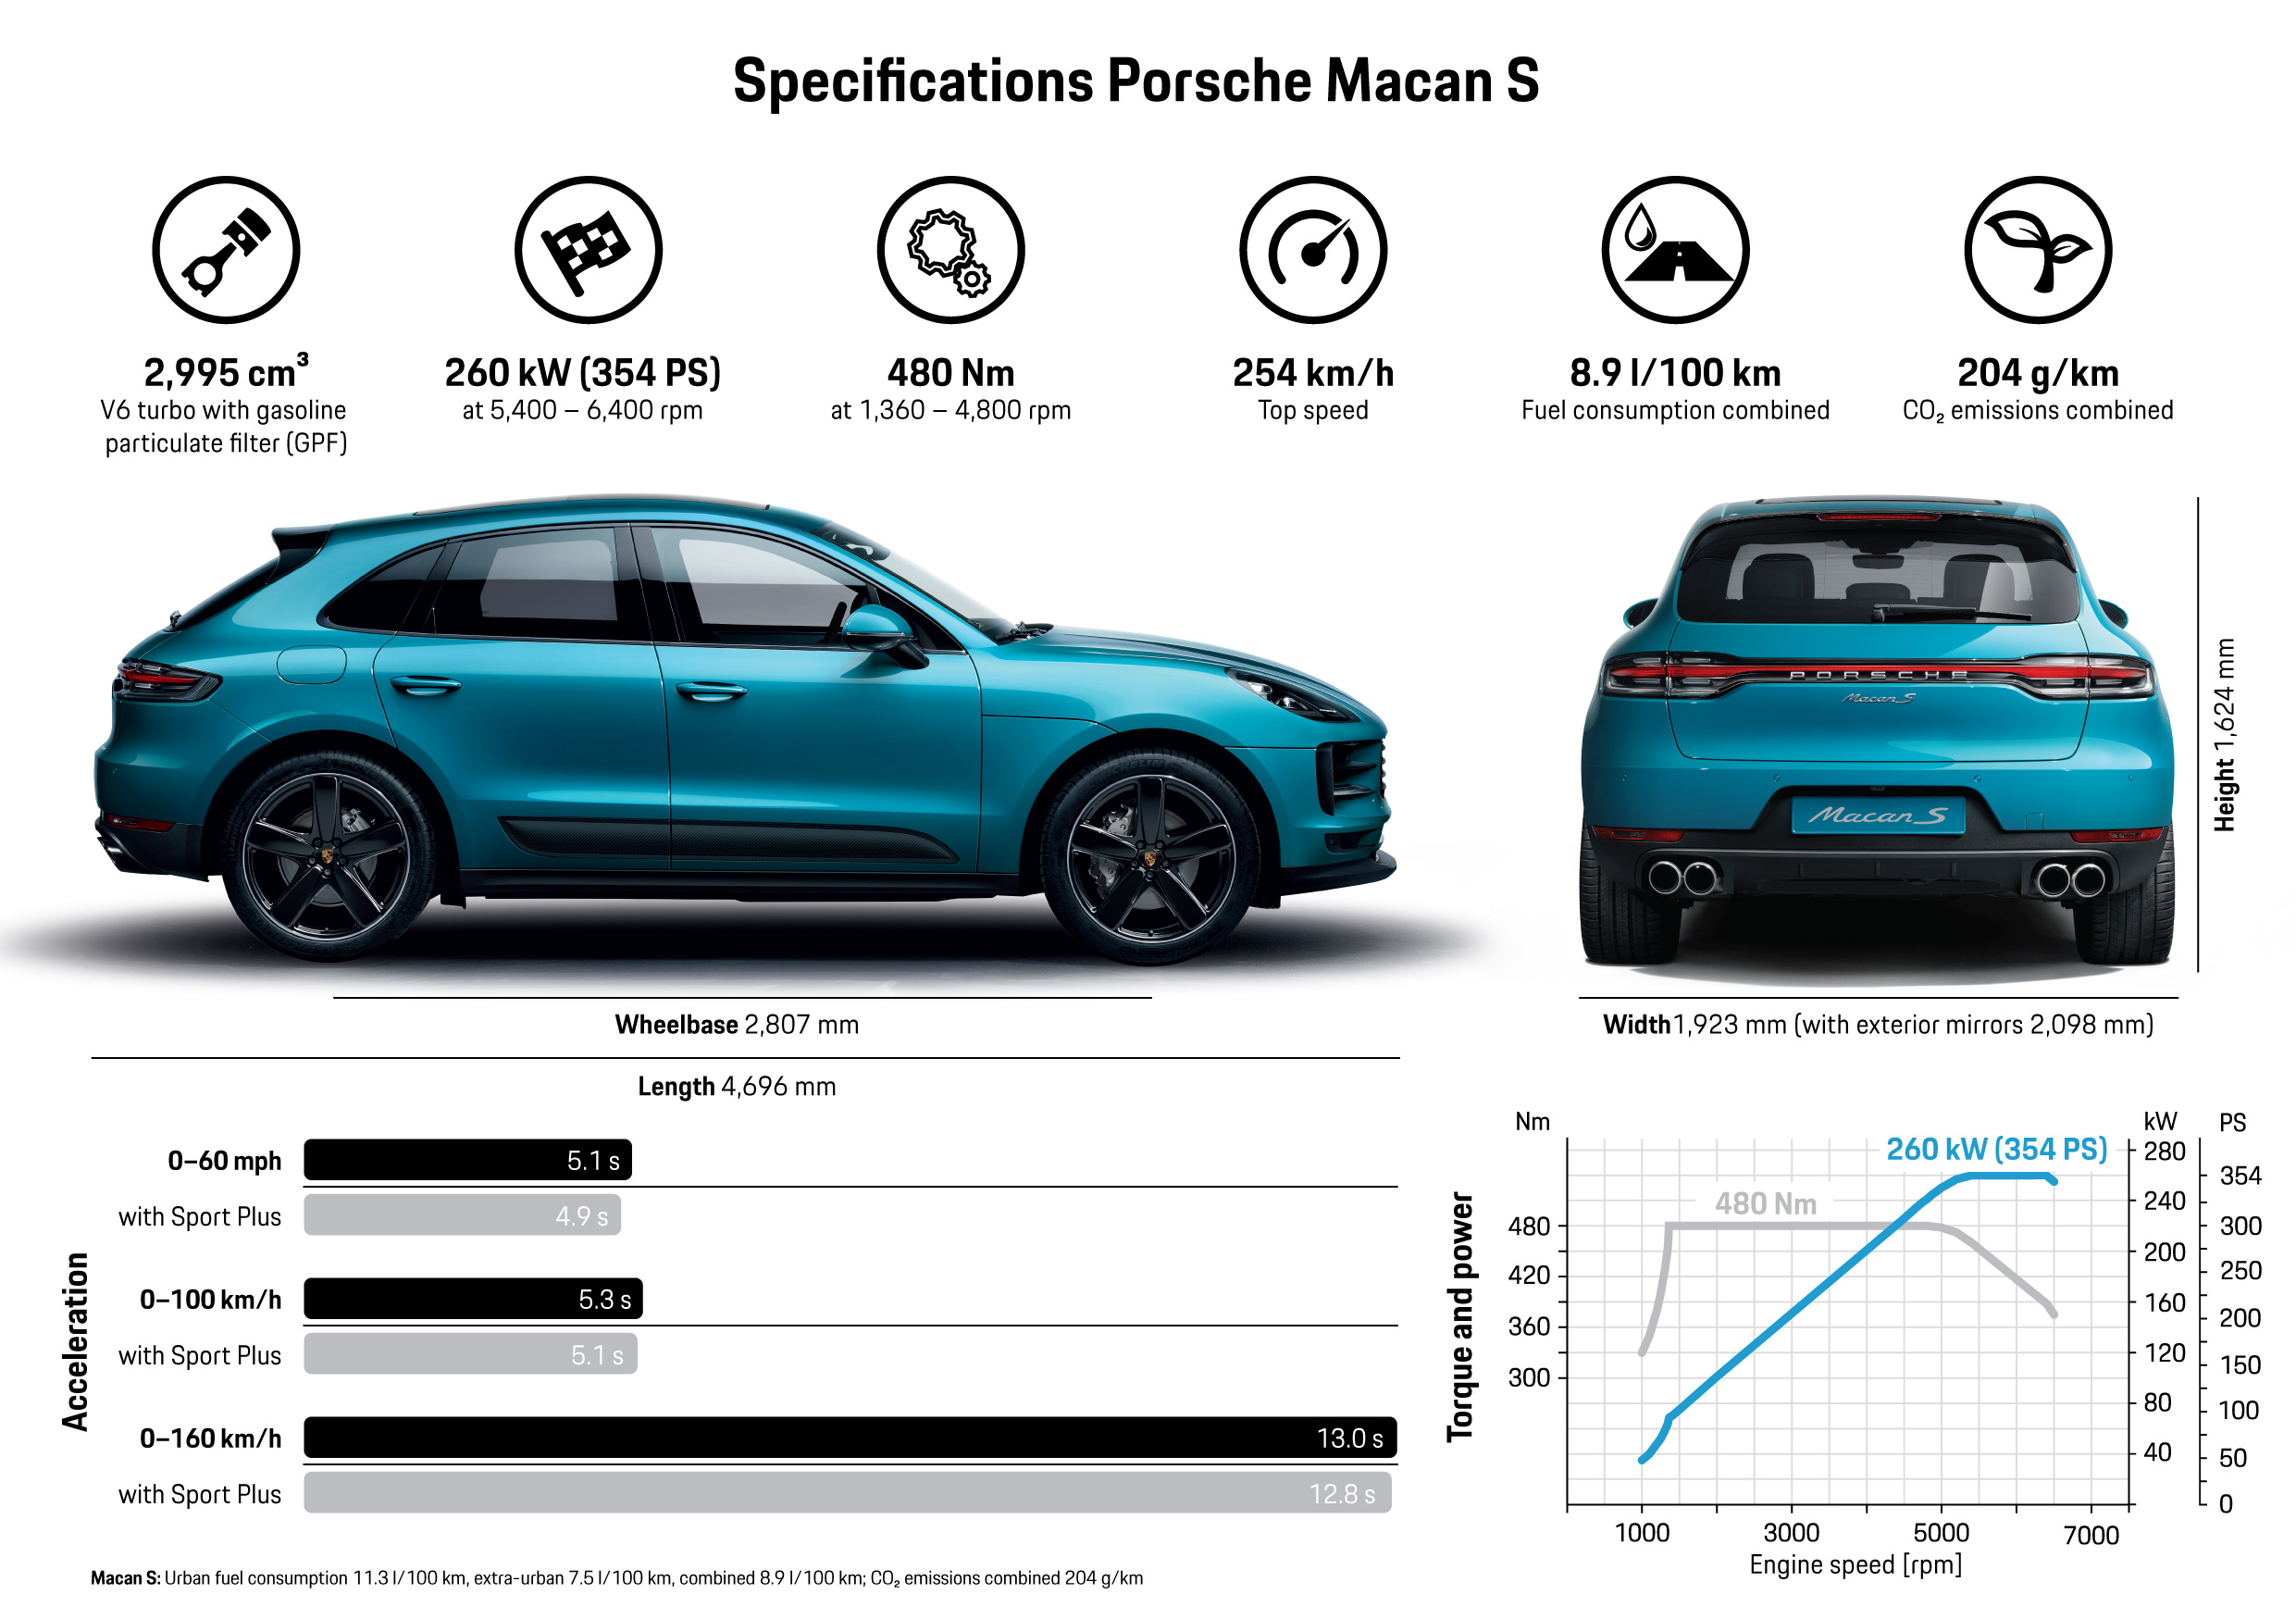 Porsche Macan S launches